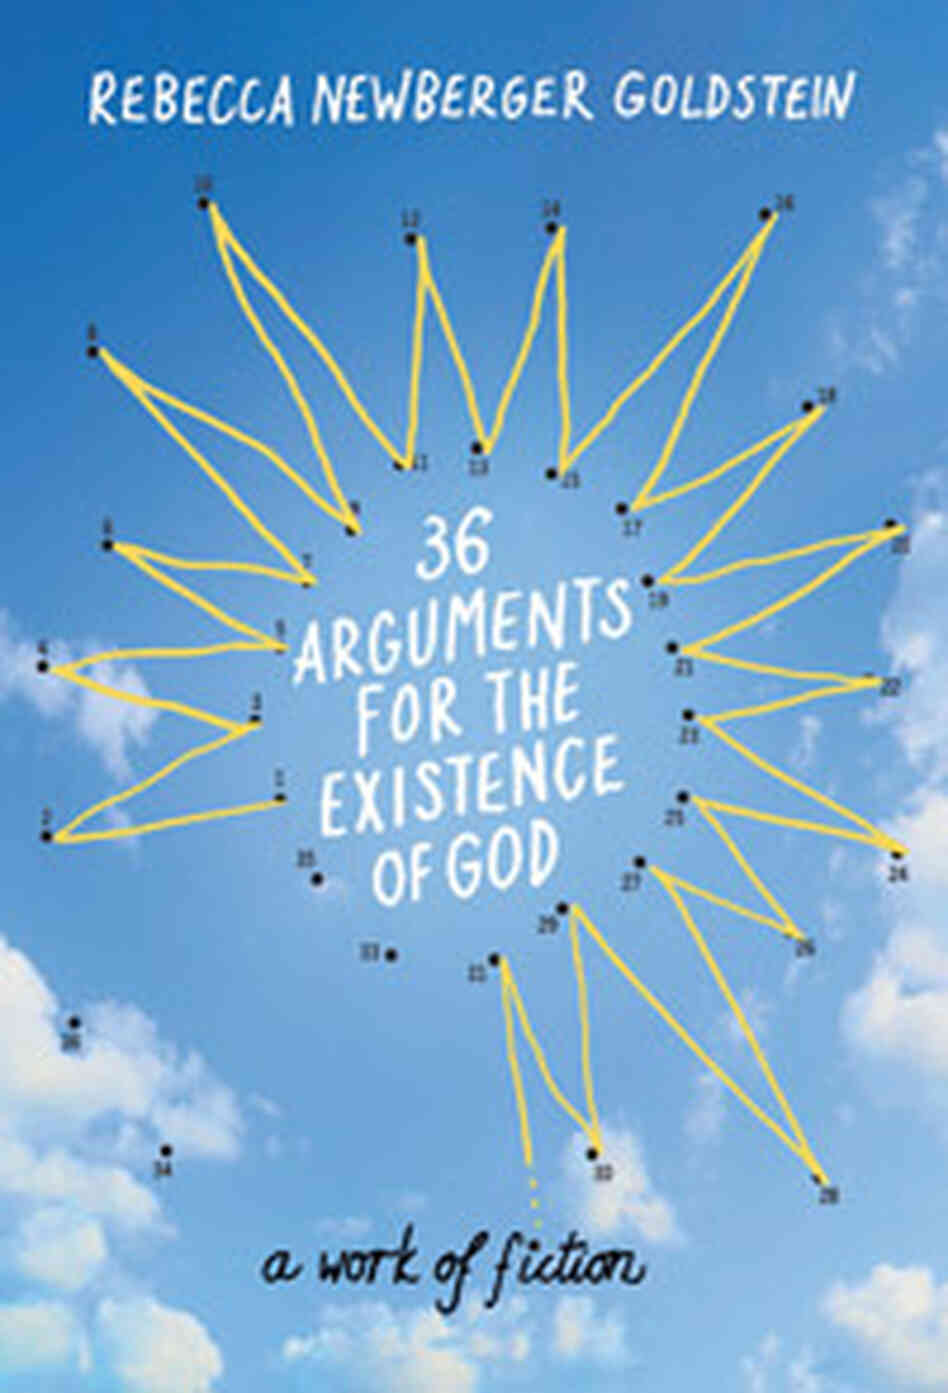 '36 Arguments for the Existence of God'